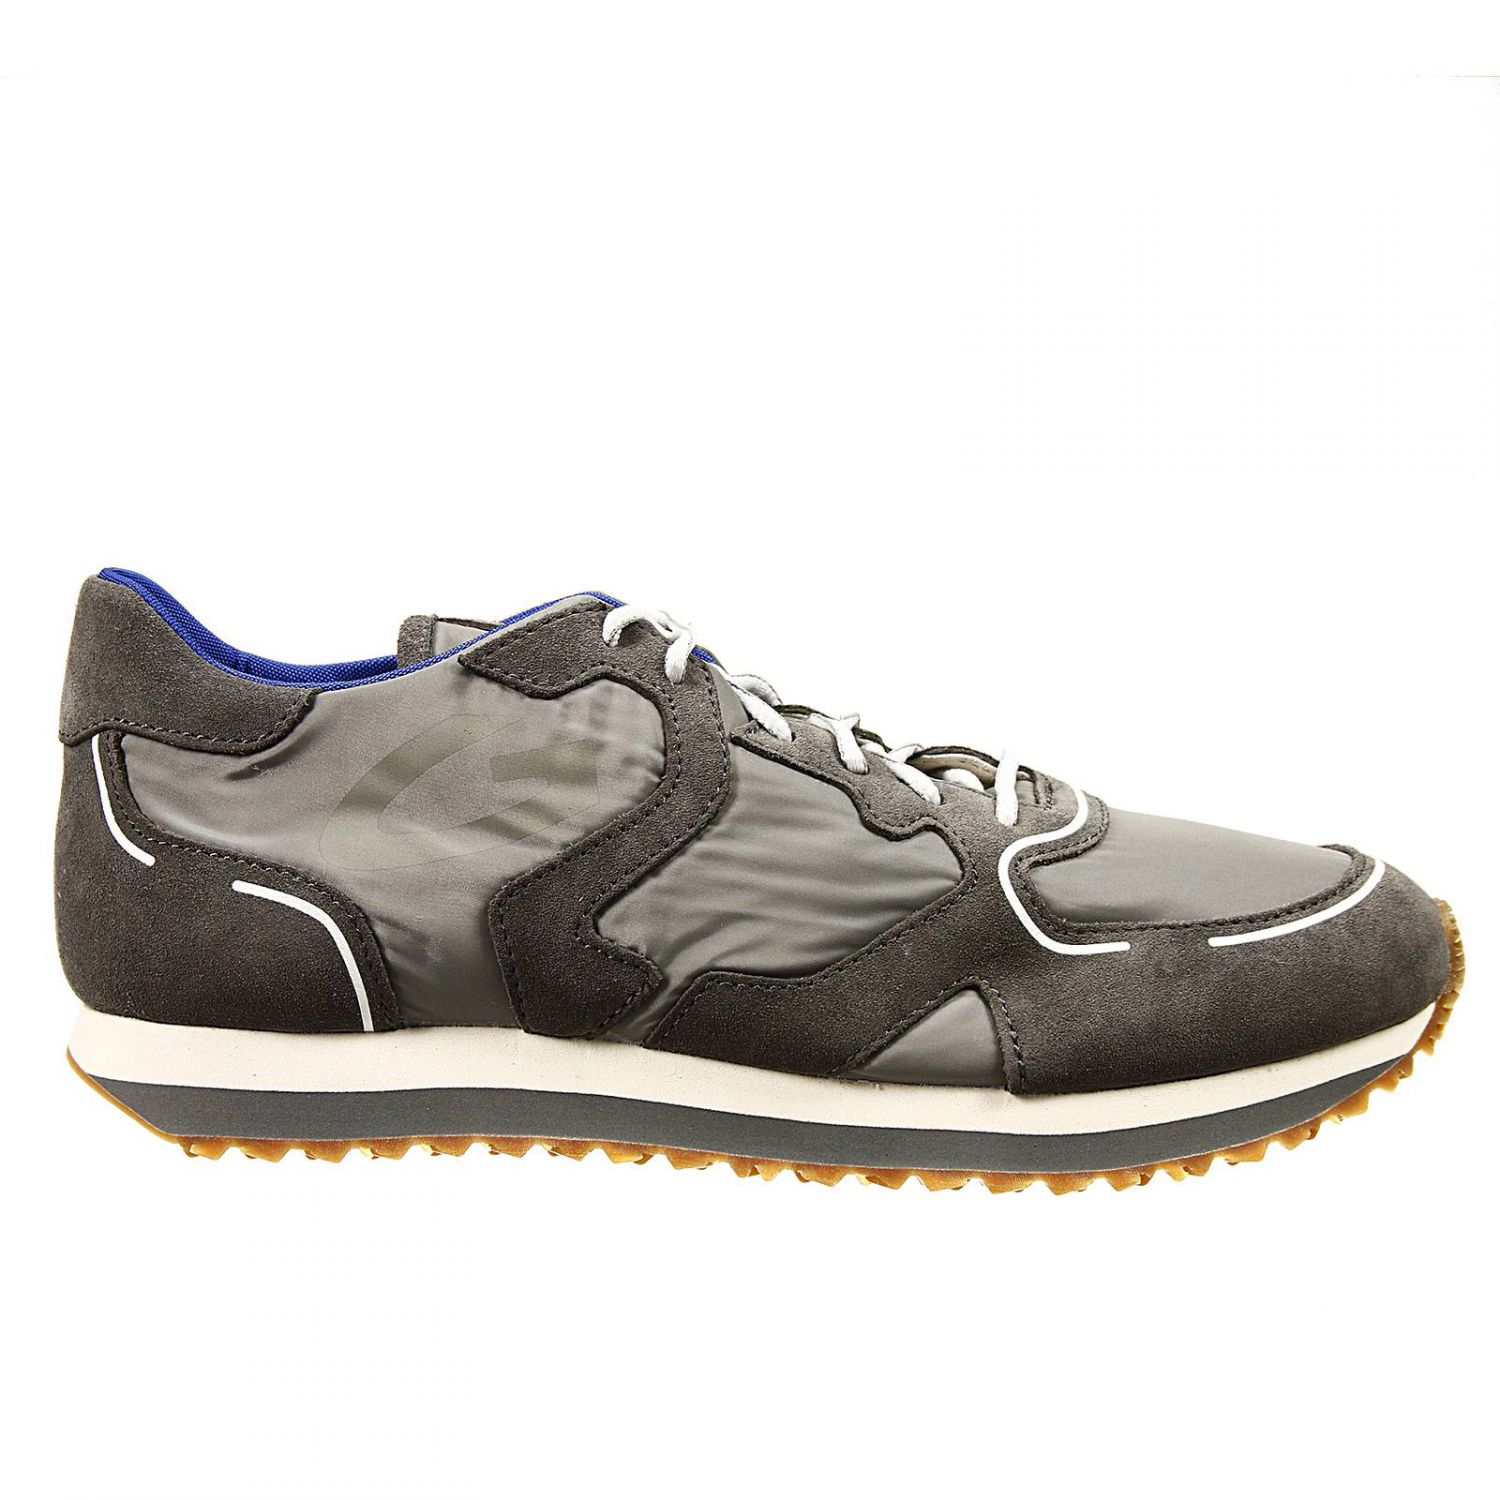 Alberto guardiani Lace-Up Shoes in Brown for Men (Cocoa